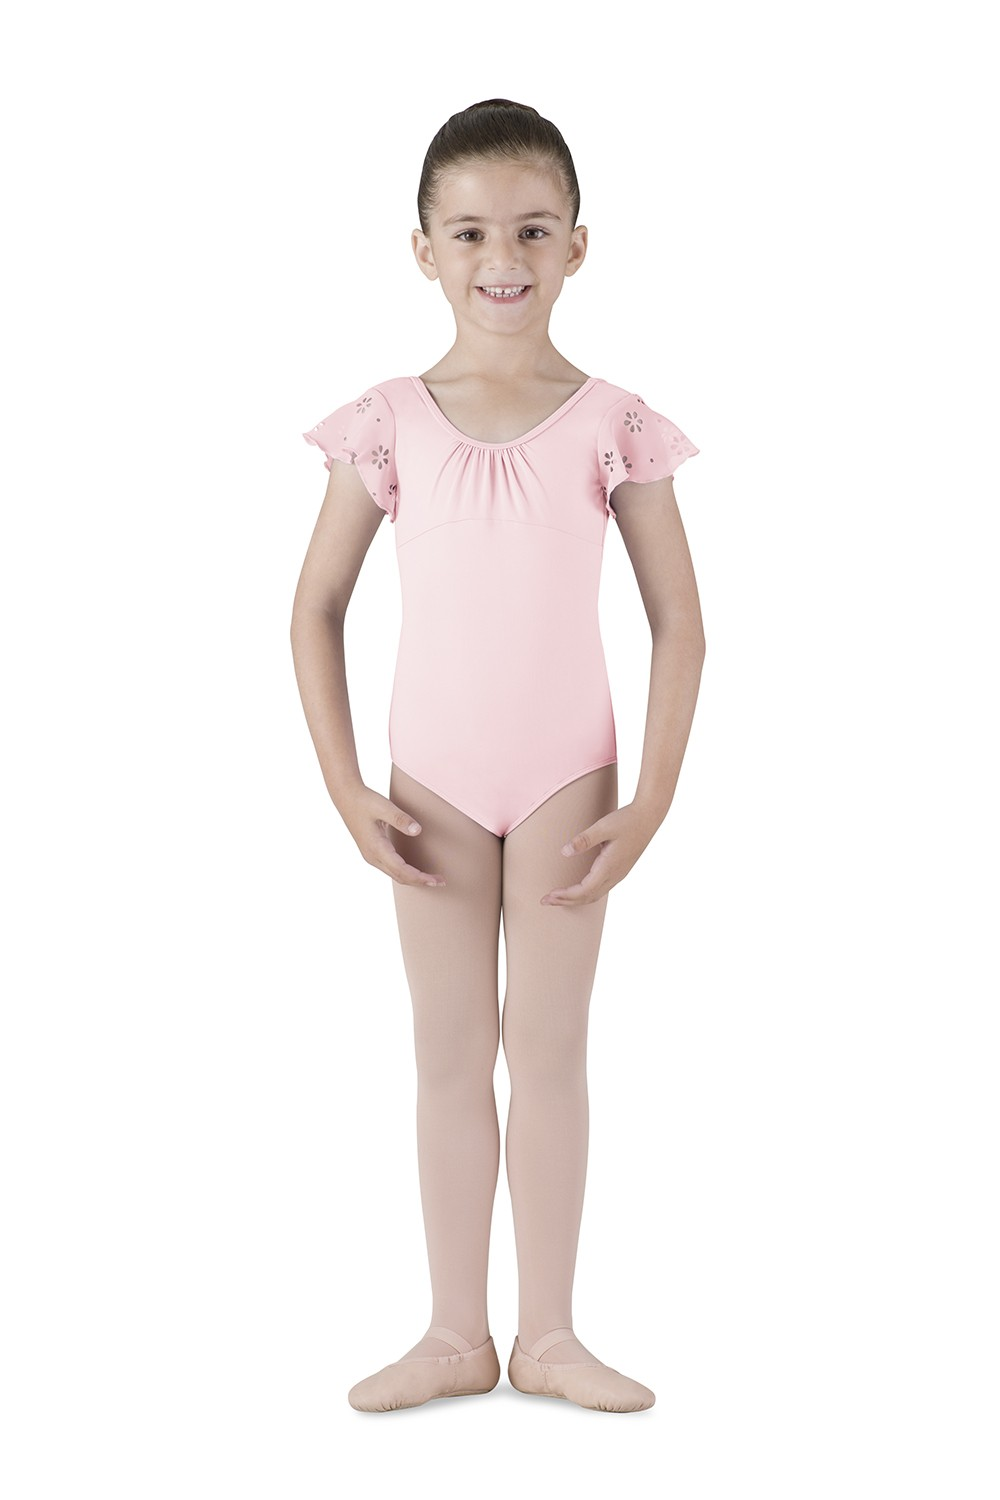 Ava Children's Dance Leotards